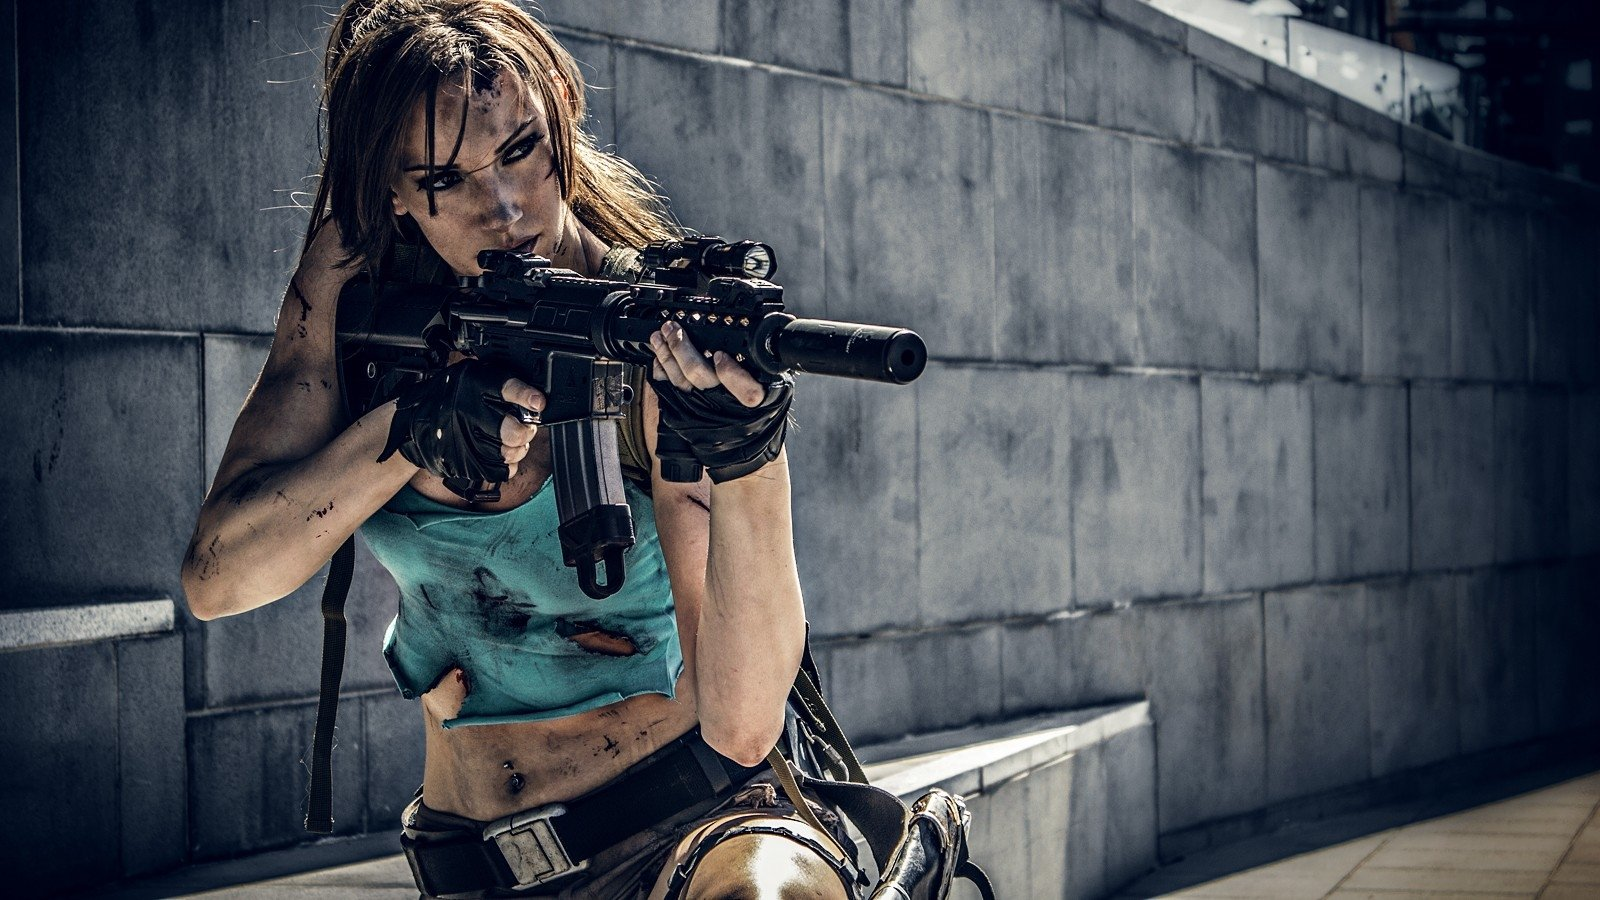 91 Girls Guns HD Wallpapers